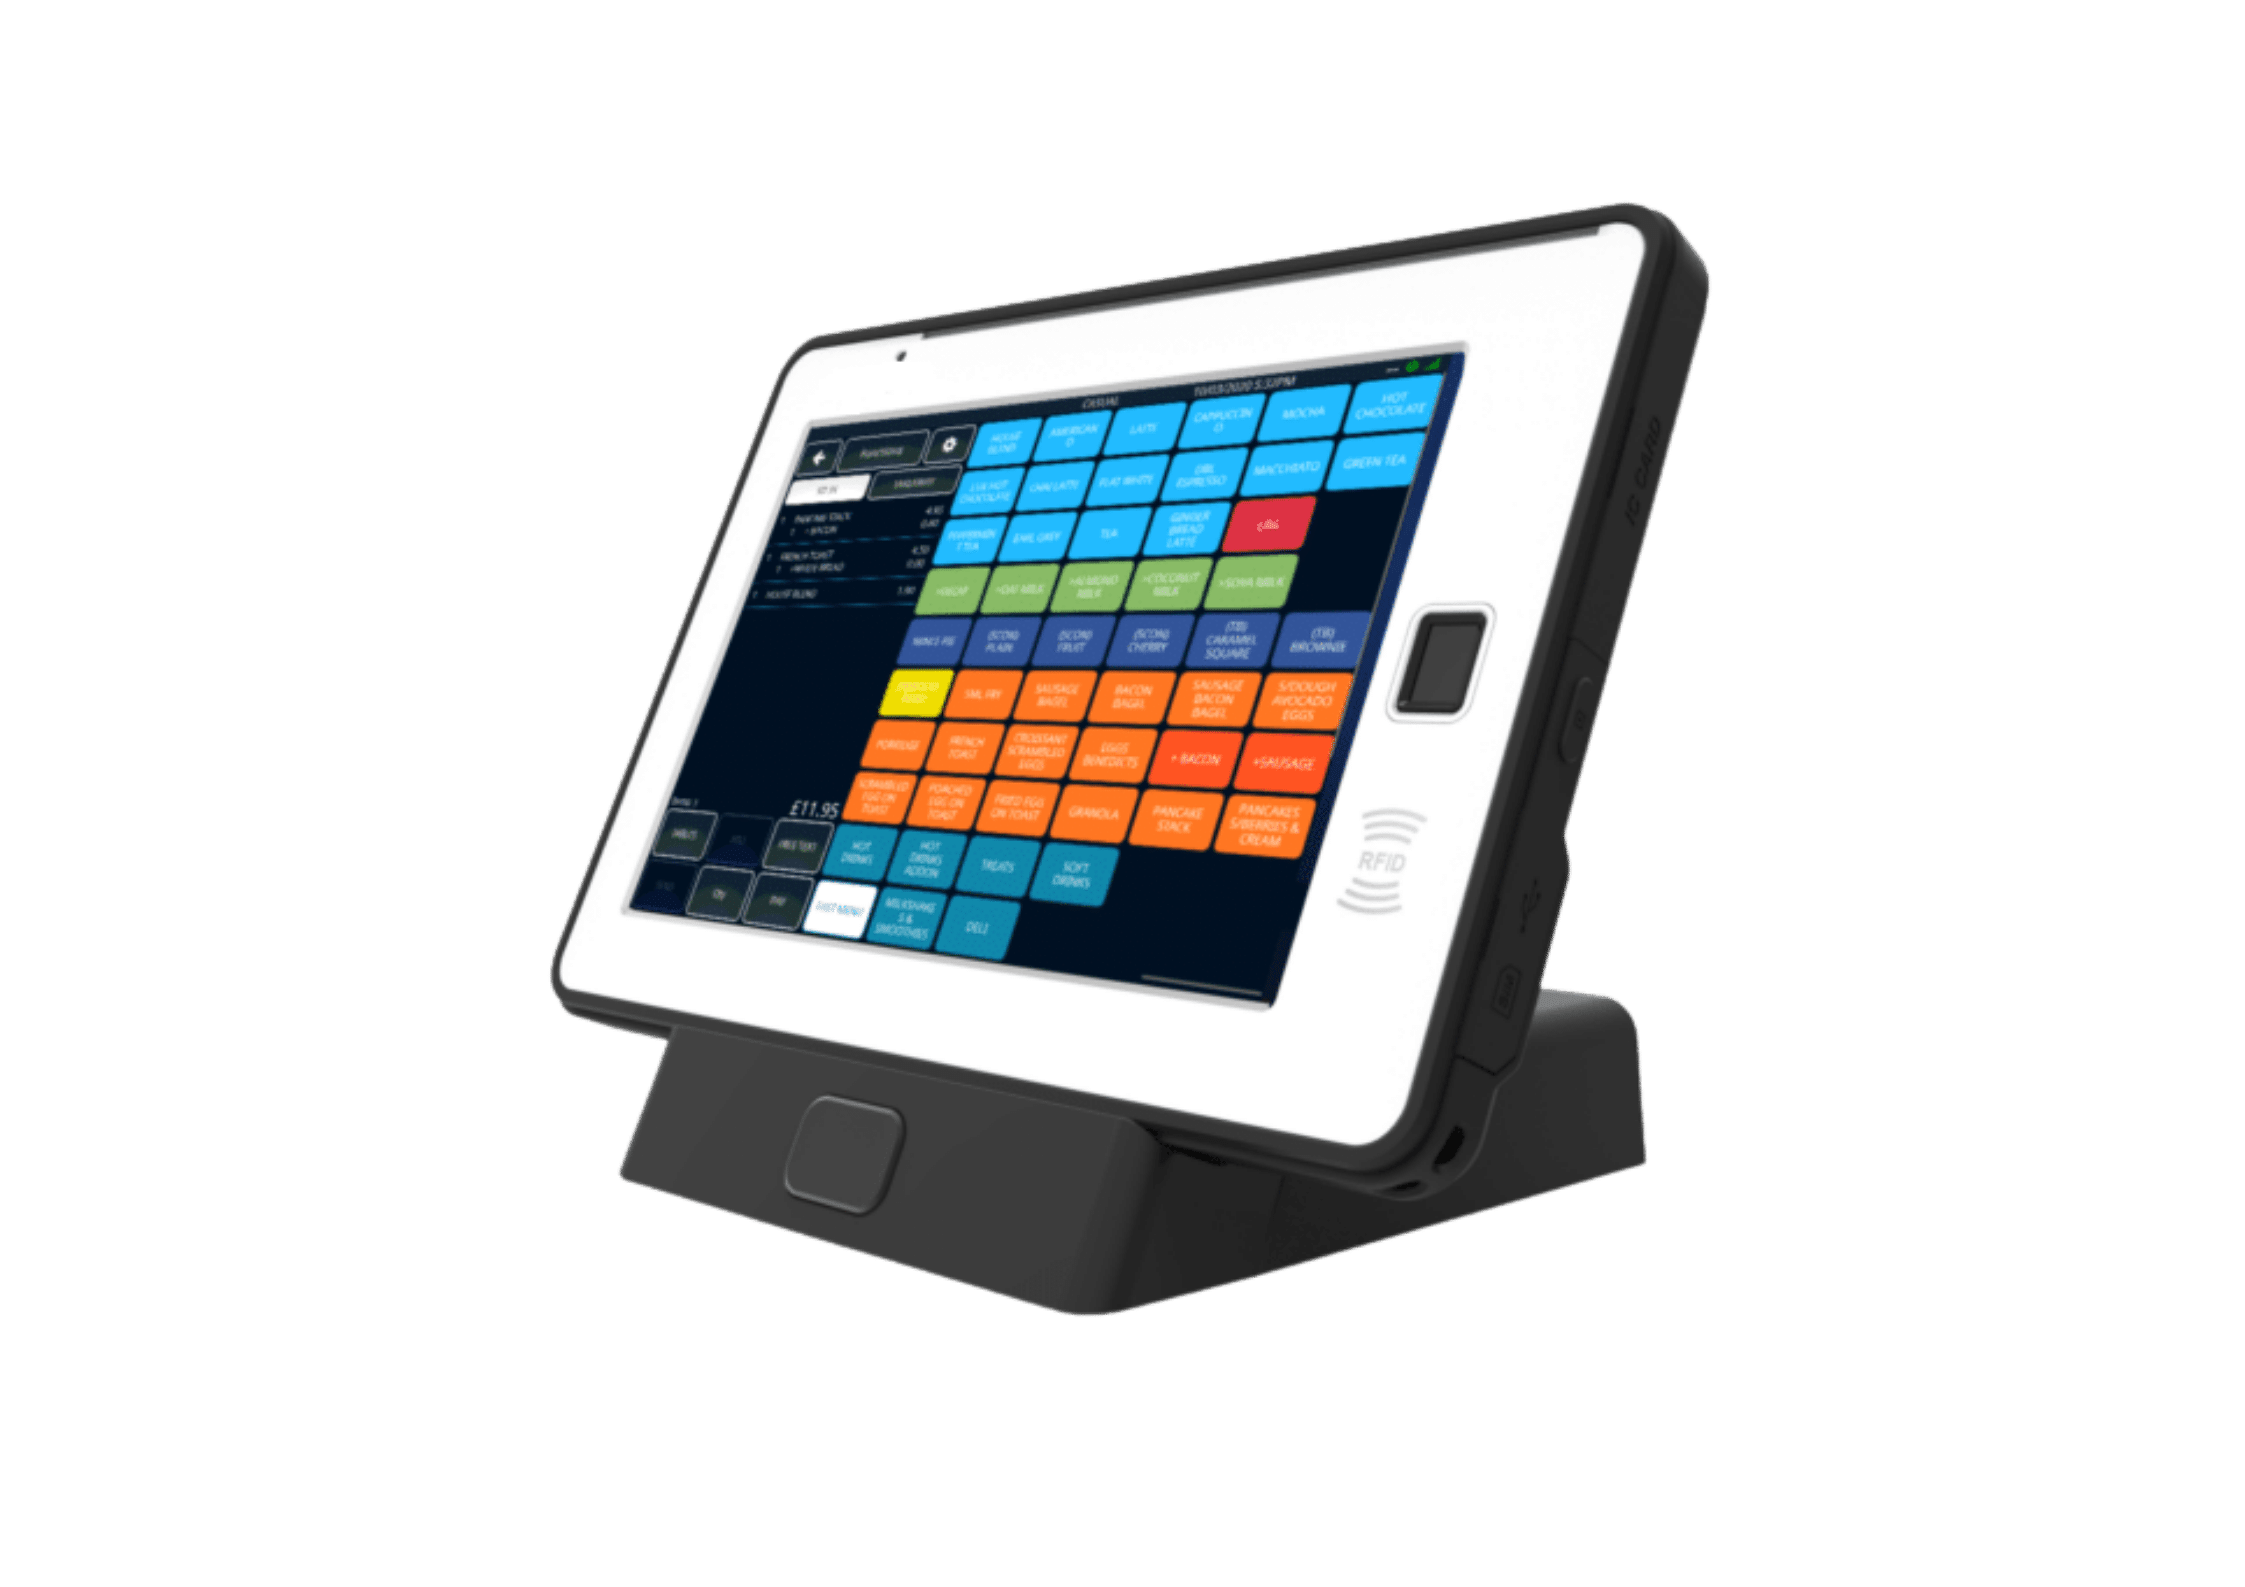 Tablet PoS Solution